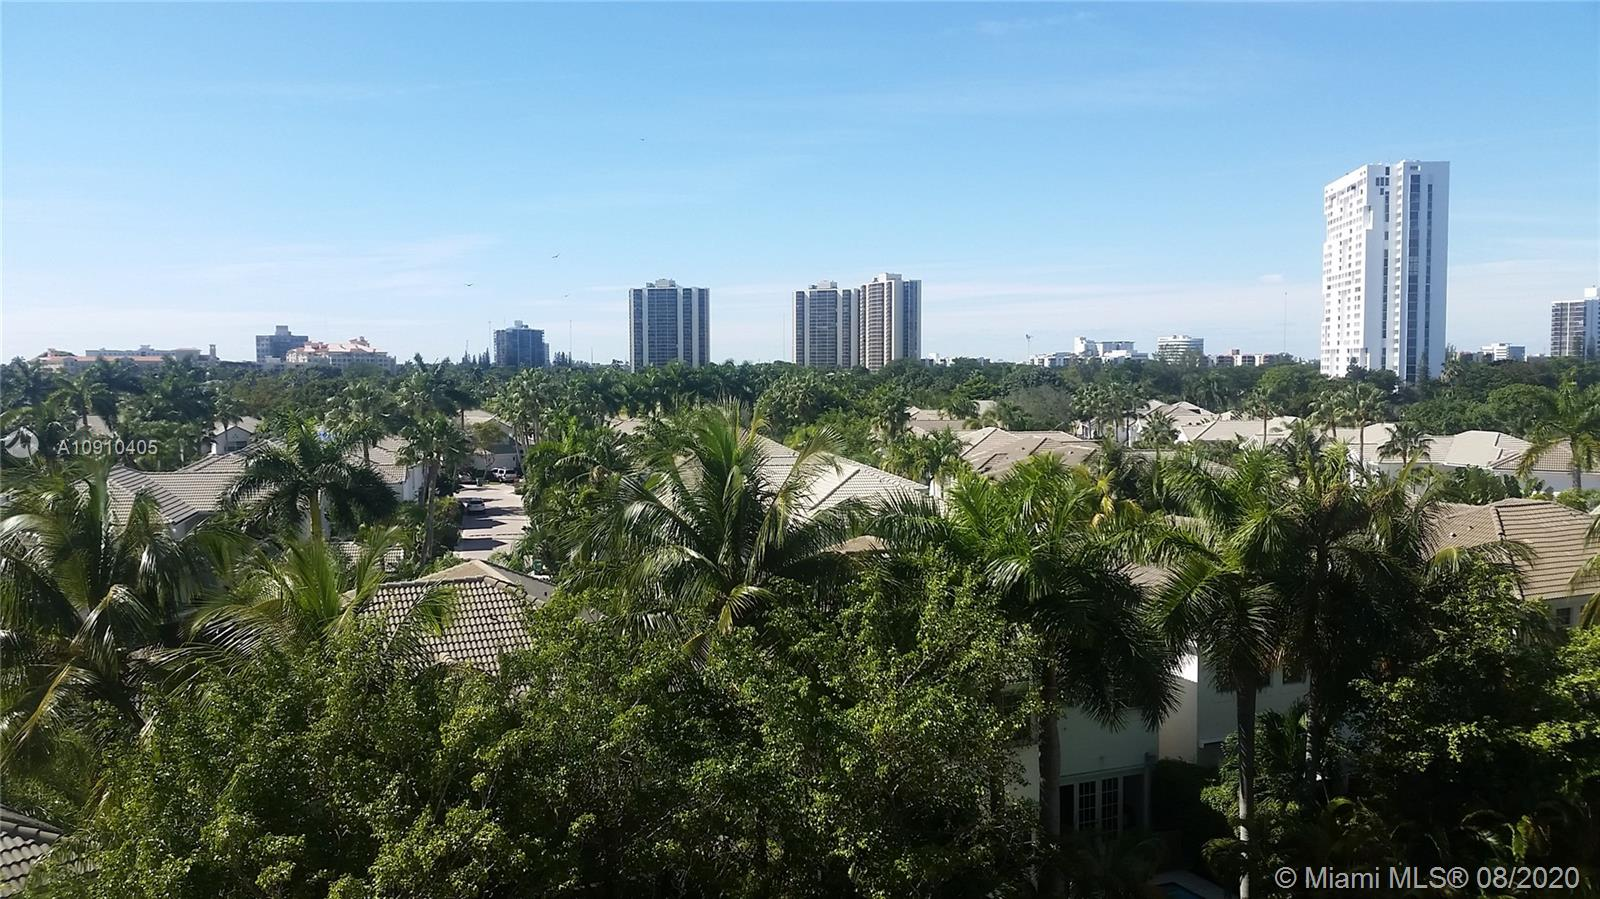 Turnberry Village South Tower #502 - 19900 E Country Club Dr #502, Aventura, FL 33180